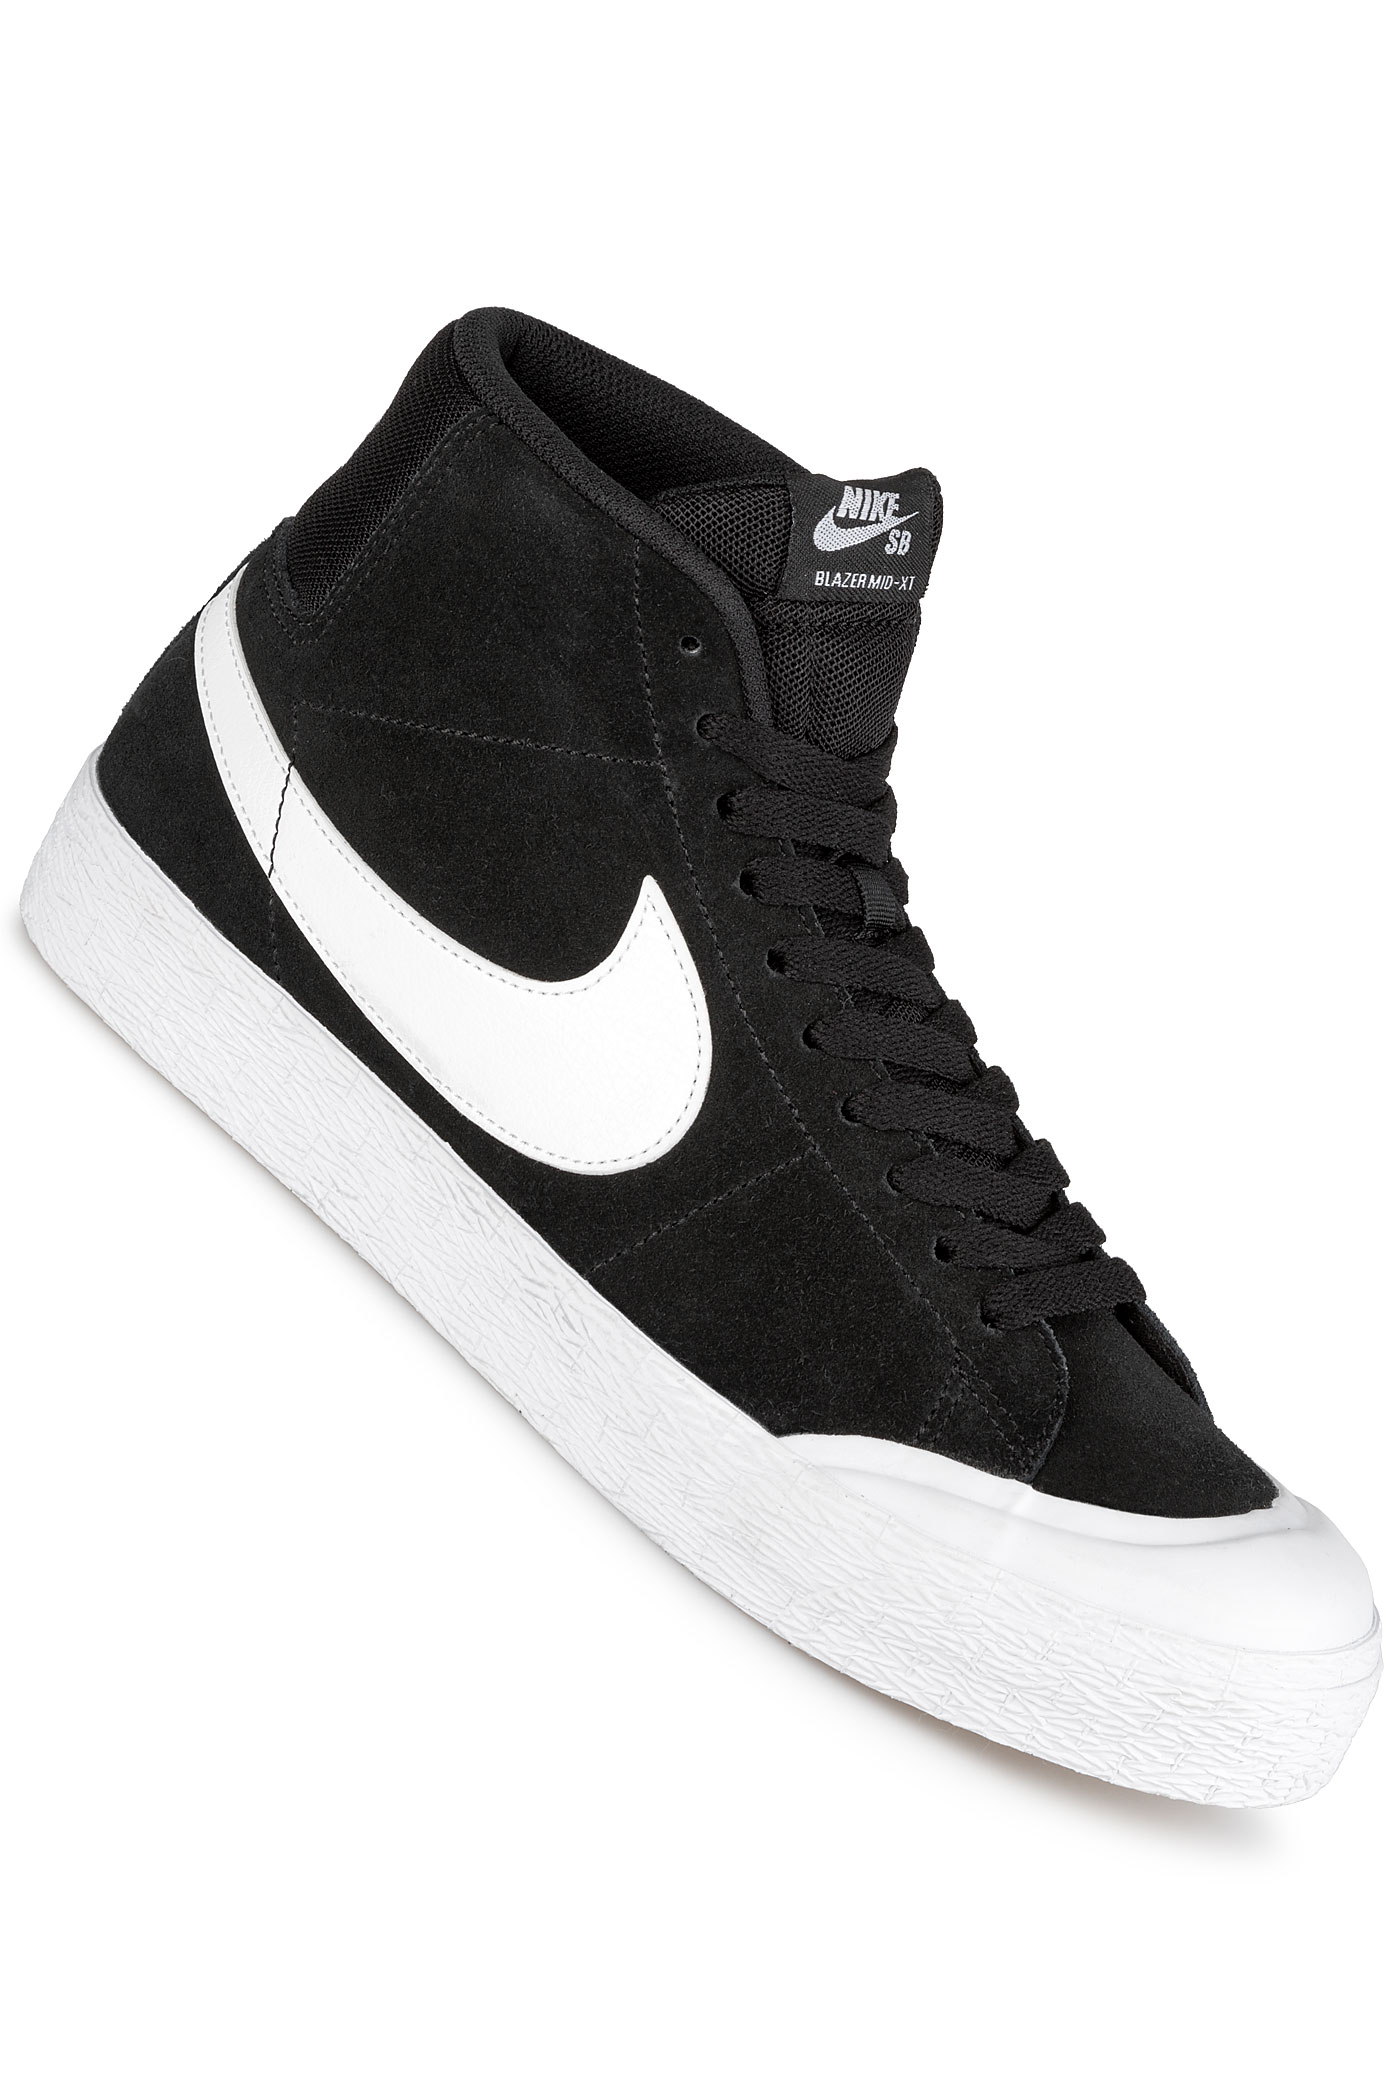 00676736f63f Nike SB Zoom Blazer Mid XT Shoes (black white gum light brown) buy ...